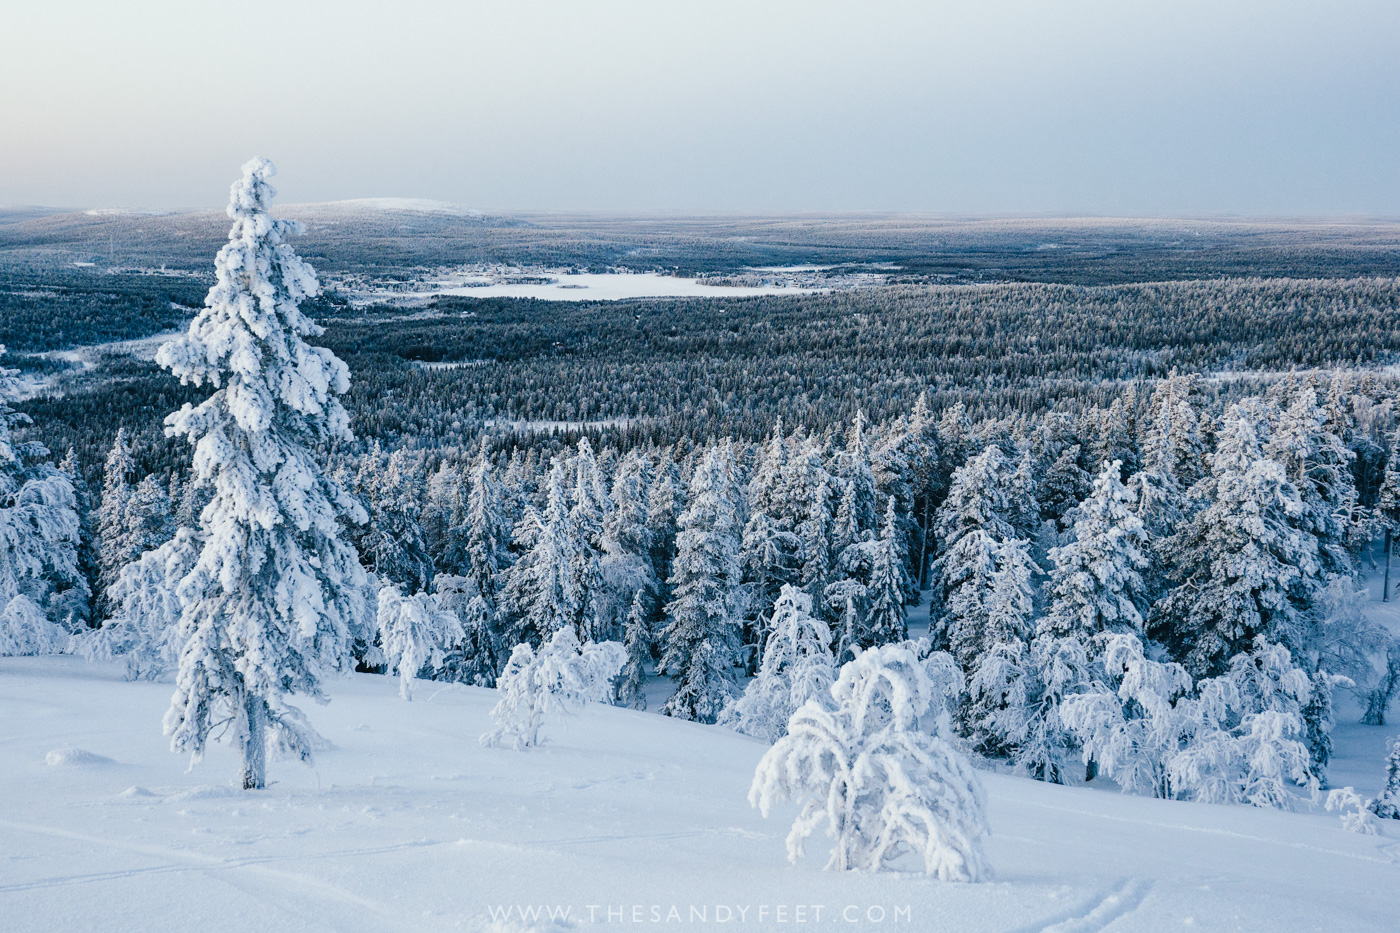 Snow covers Lapland in Winter